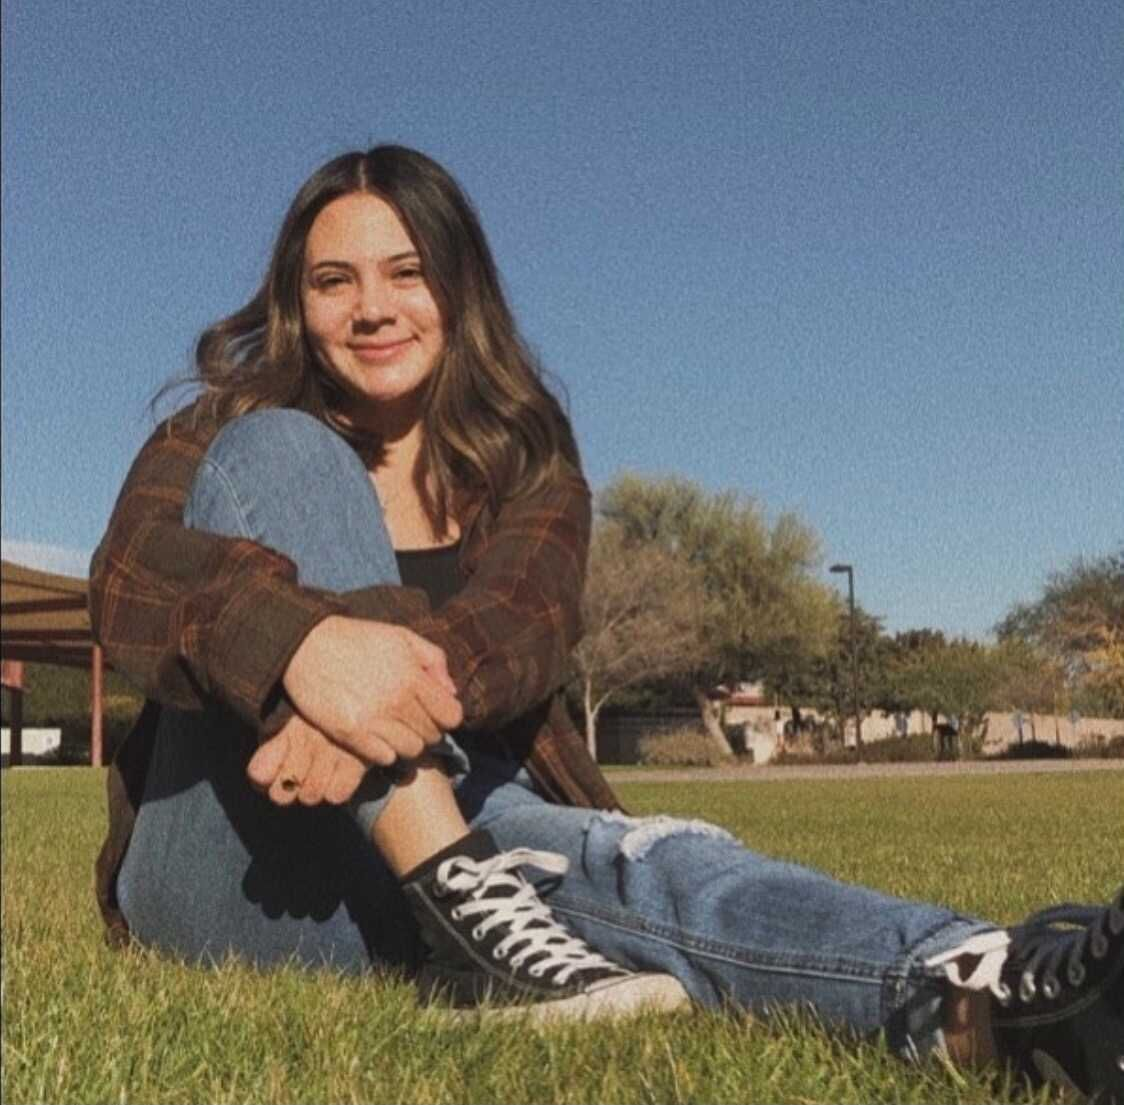 Humans of NAU: A return to in-person classes